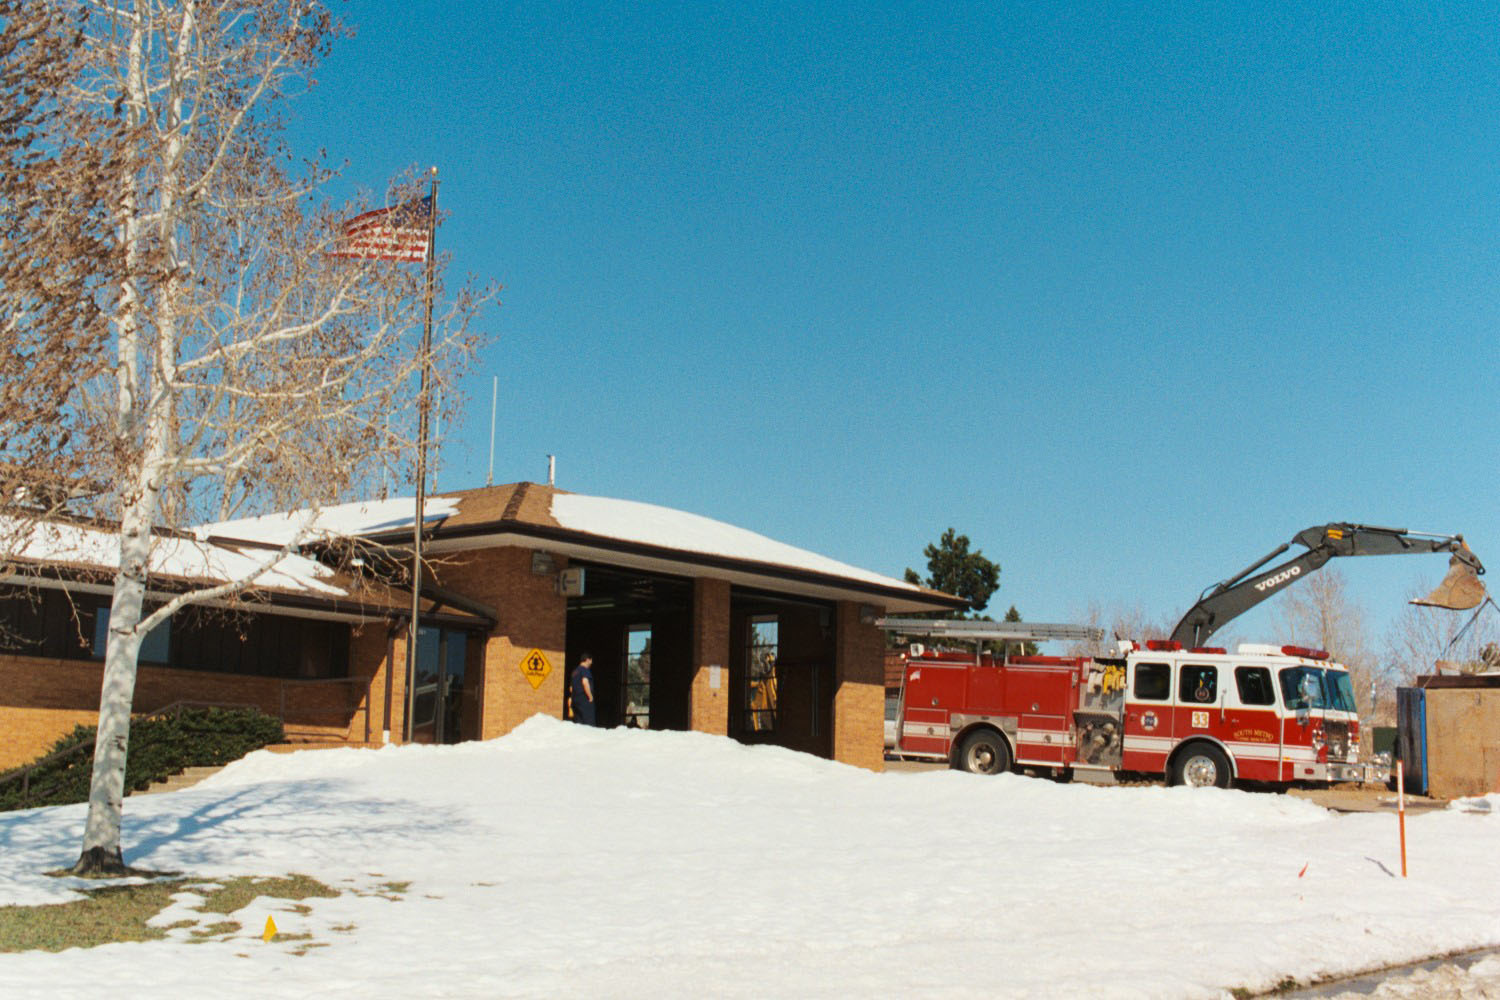 Fire Station 33